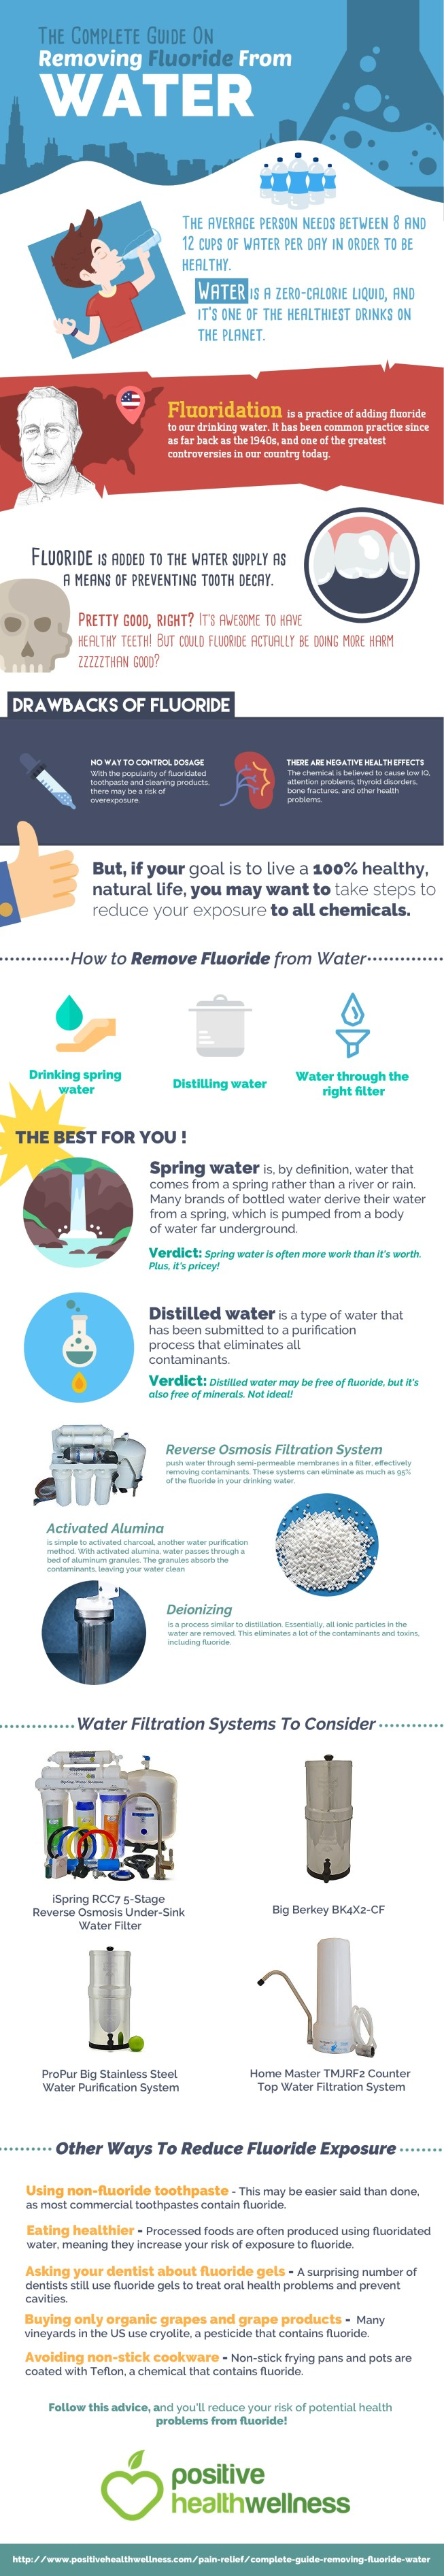 The Complete Guide On Removing Fluoride From Water